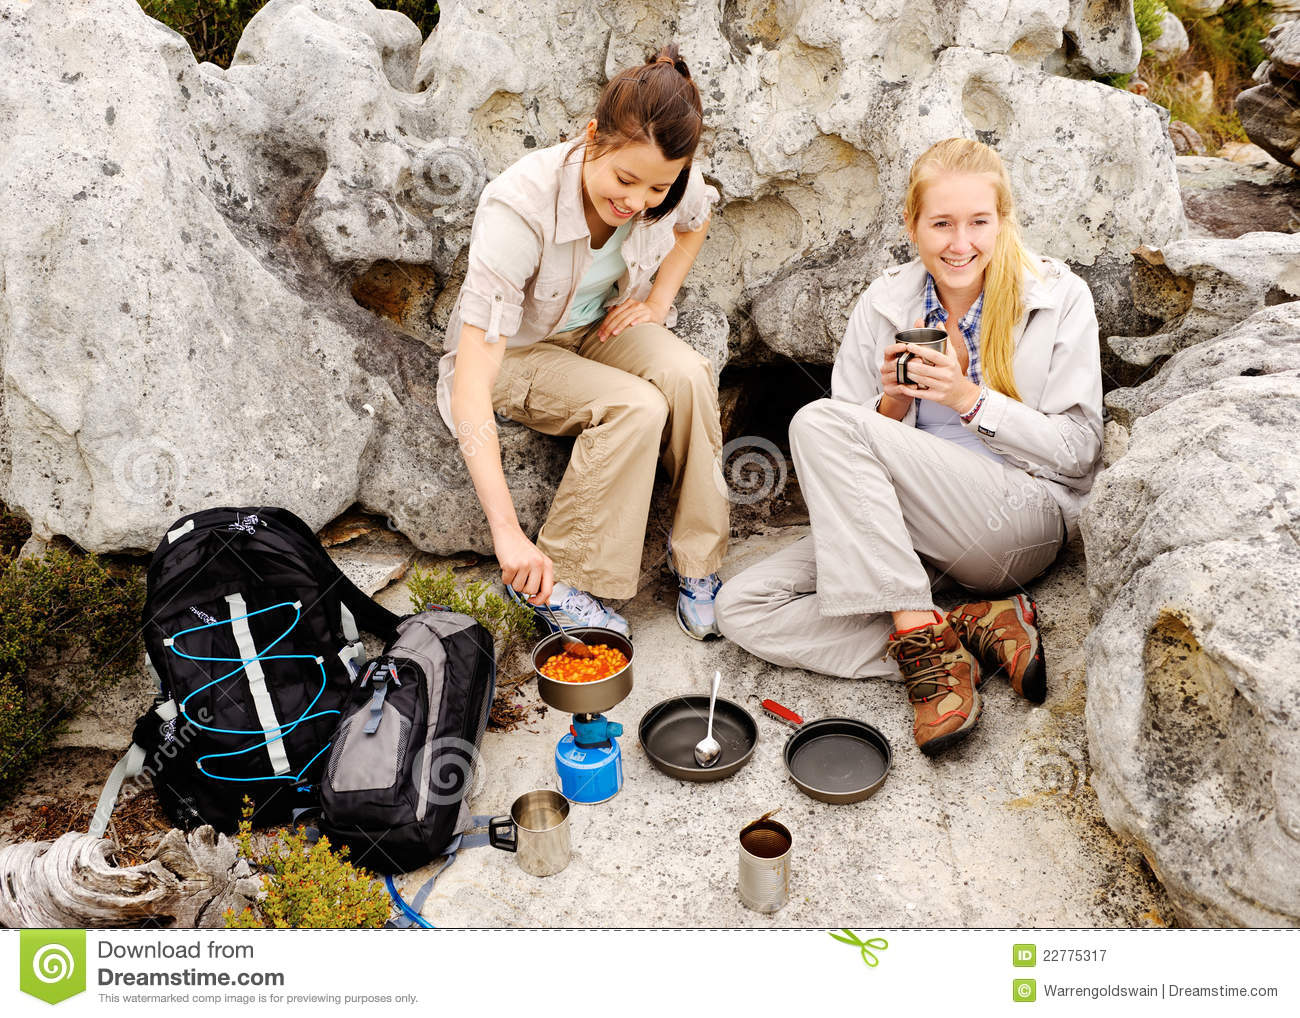 Two young women prepares something to eat